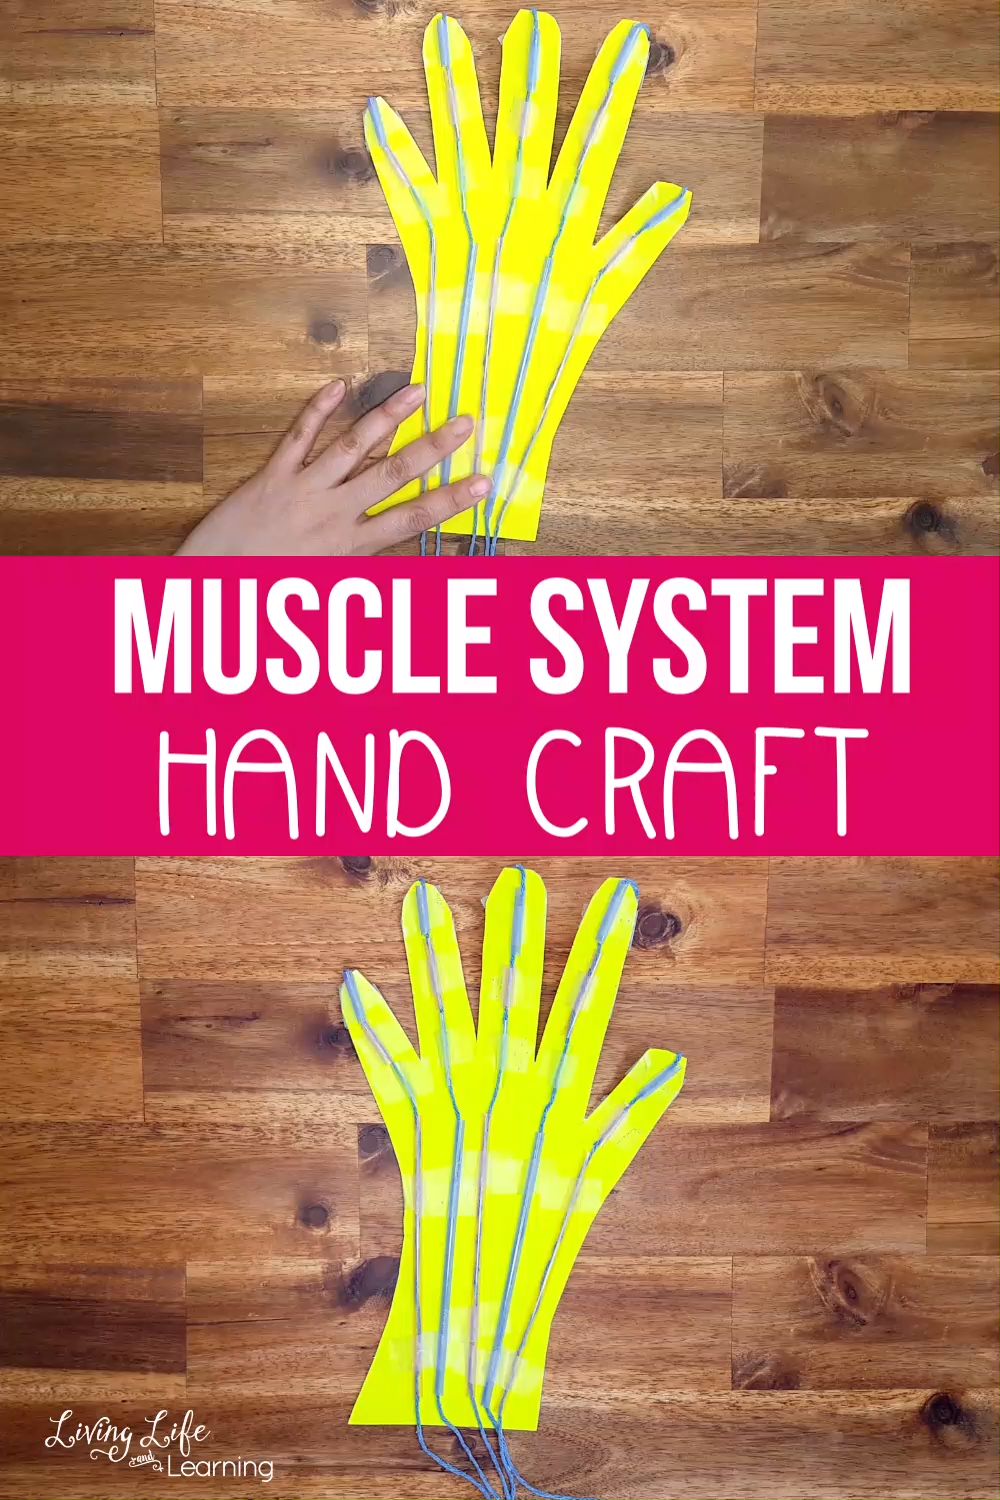 Awesome Muscular System Hand Craft for Kids - Hand crafts for kids, Science activities for toddlers, Science projects for kids, Science crafts, Human body activities, Muscle system - Make science come alive by seeing how the hand works as it moves  They will absolutely love making this Muscle System hand craft for kids!